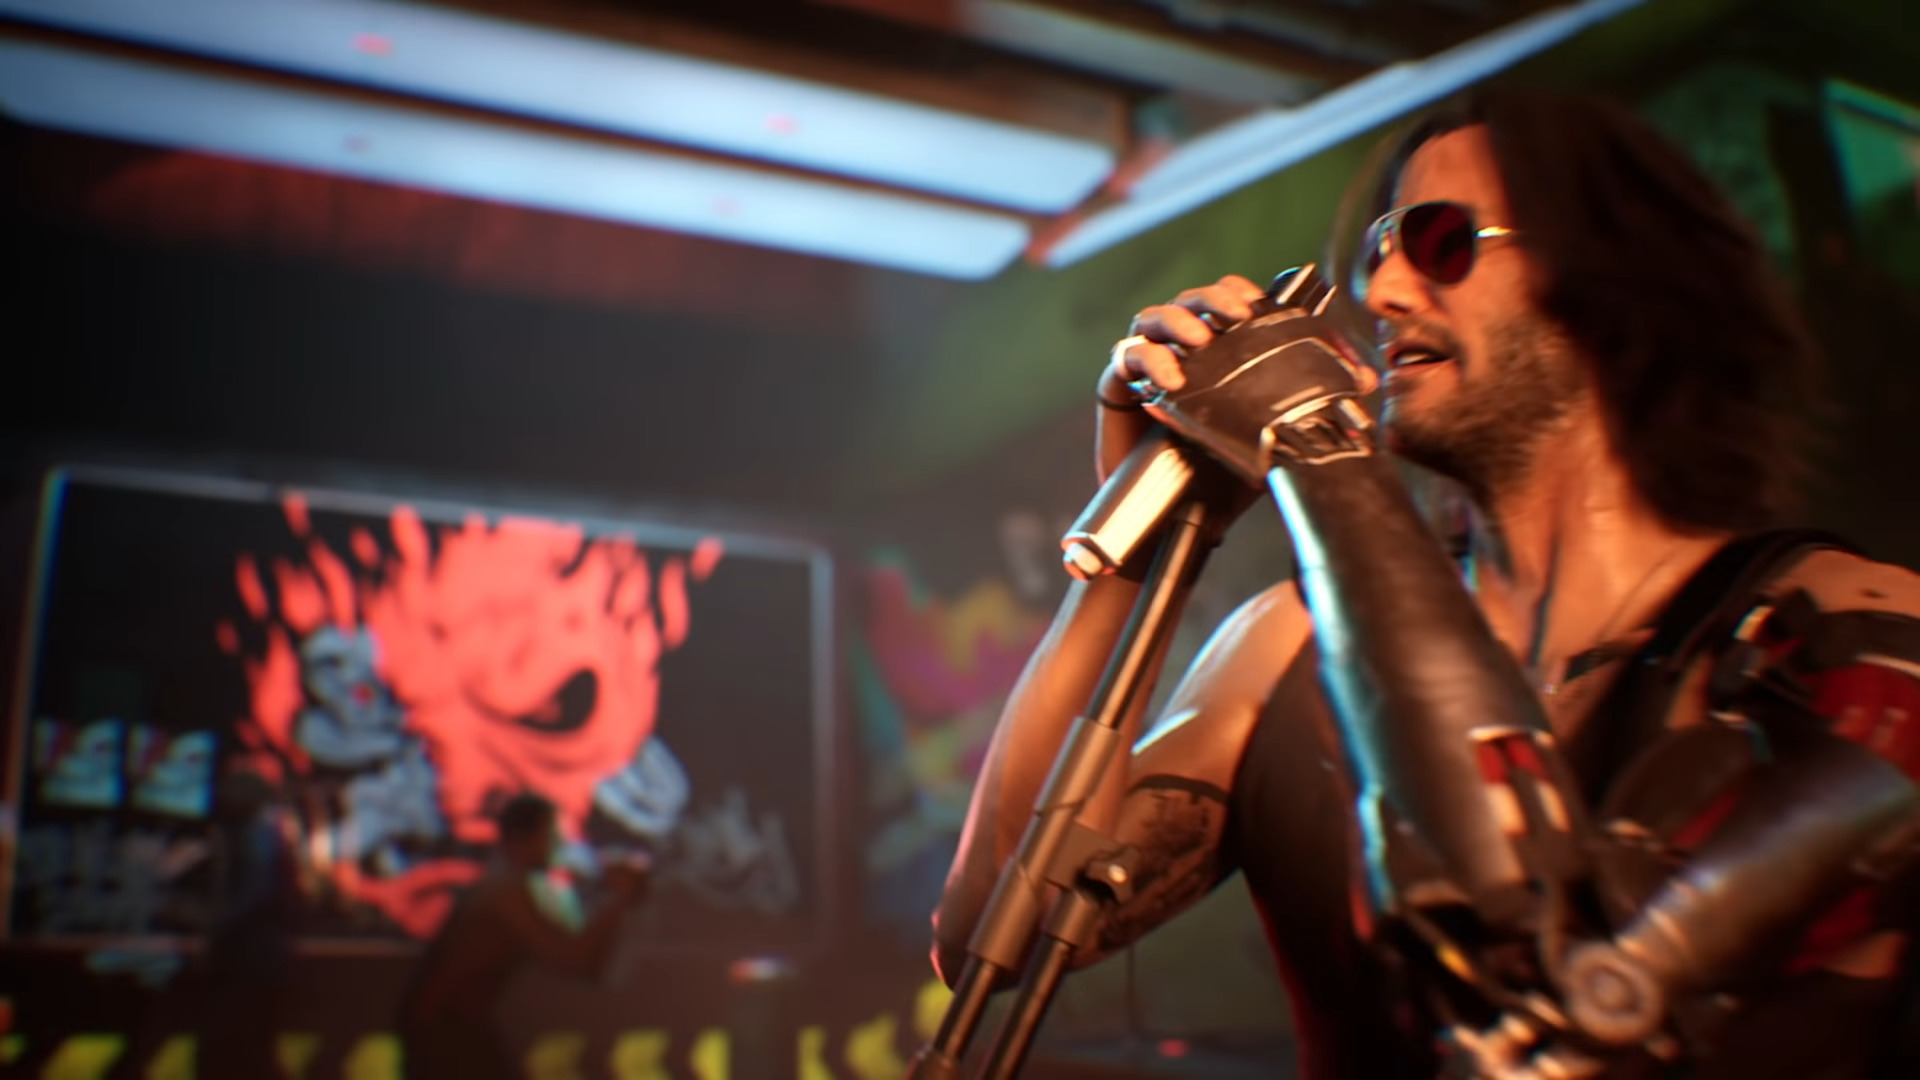 Cyberpunk 2077: Johnny Silverhand Prosthetic Recreated In Real Life By Limbitless Solution To Donate In Clinical Trials